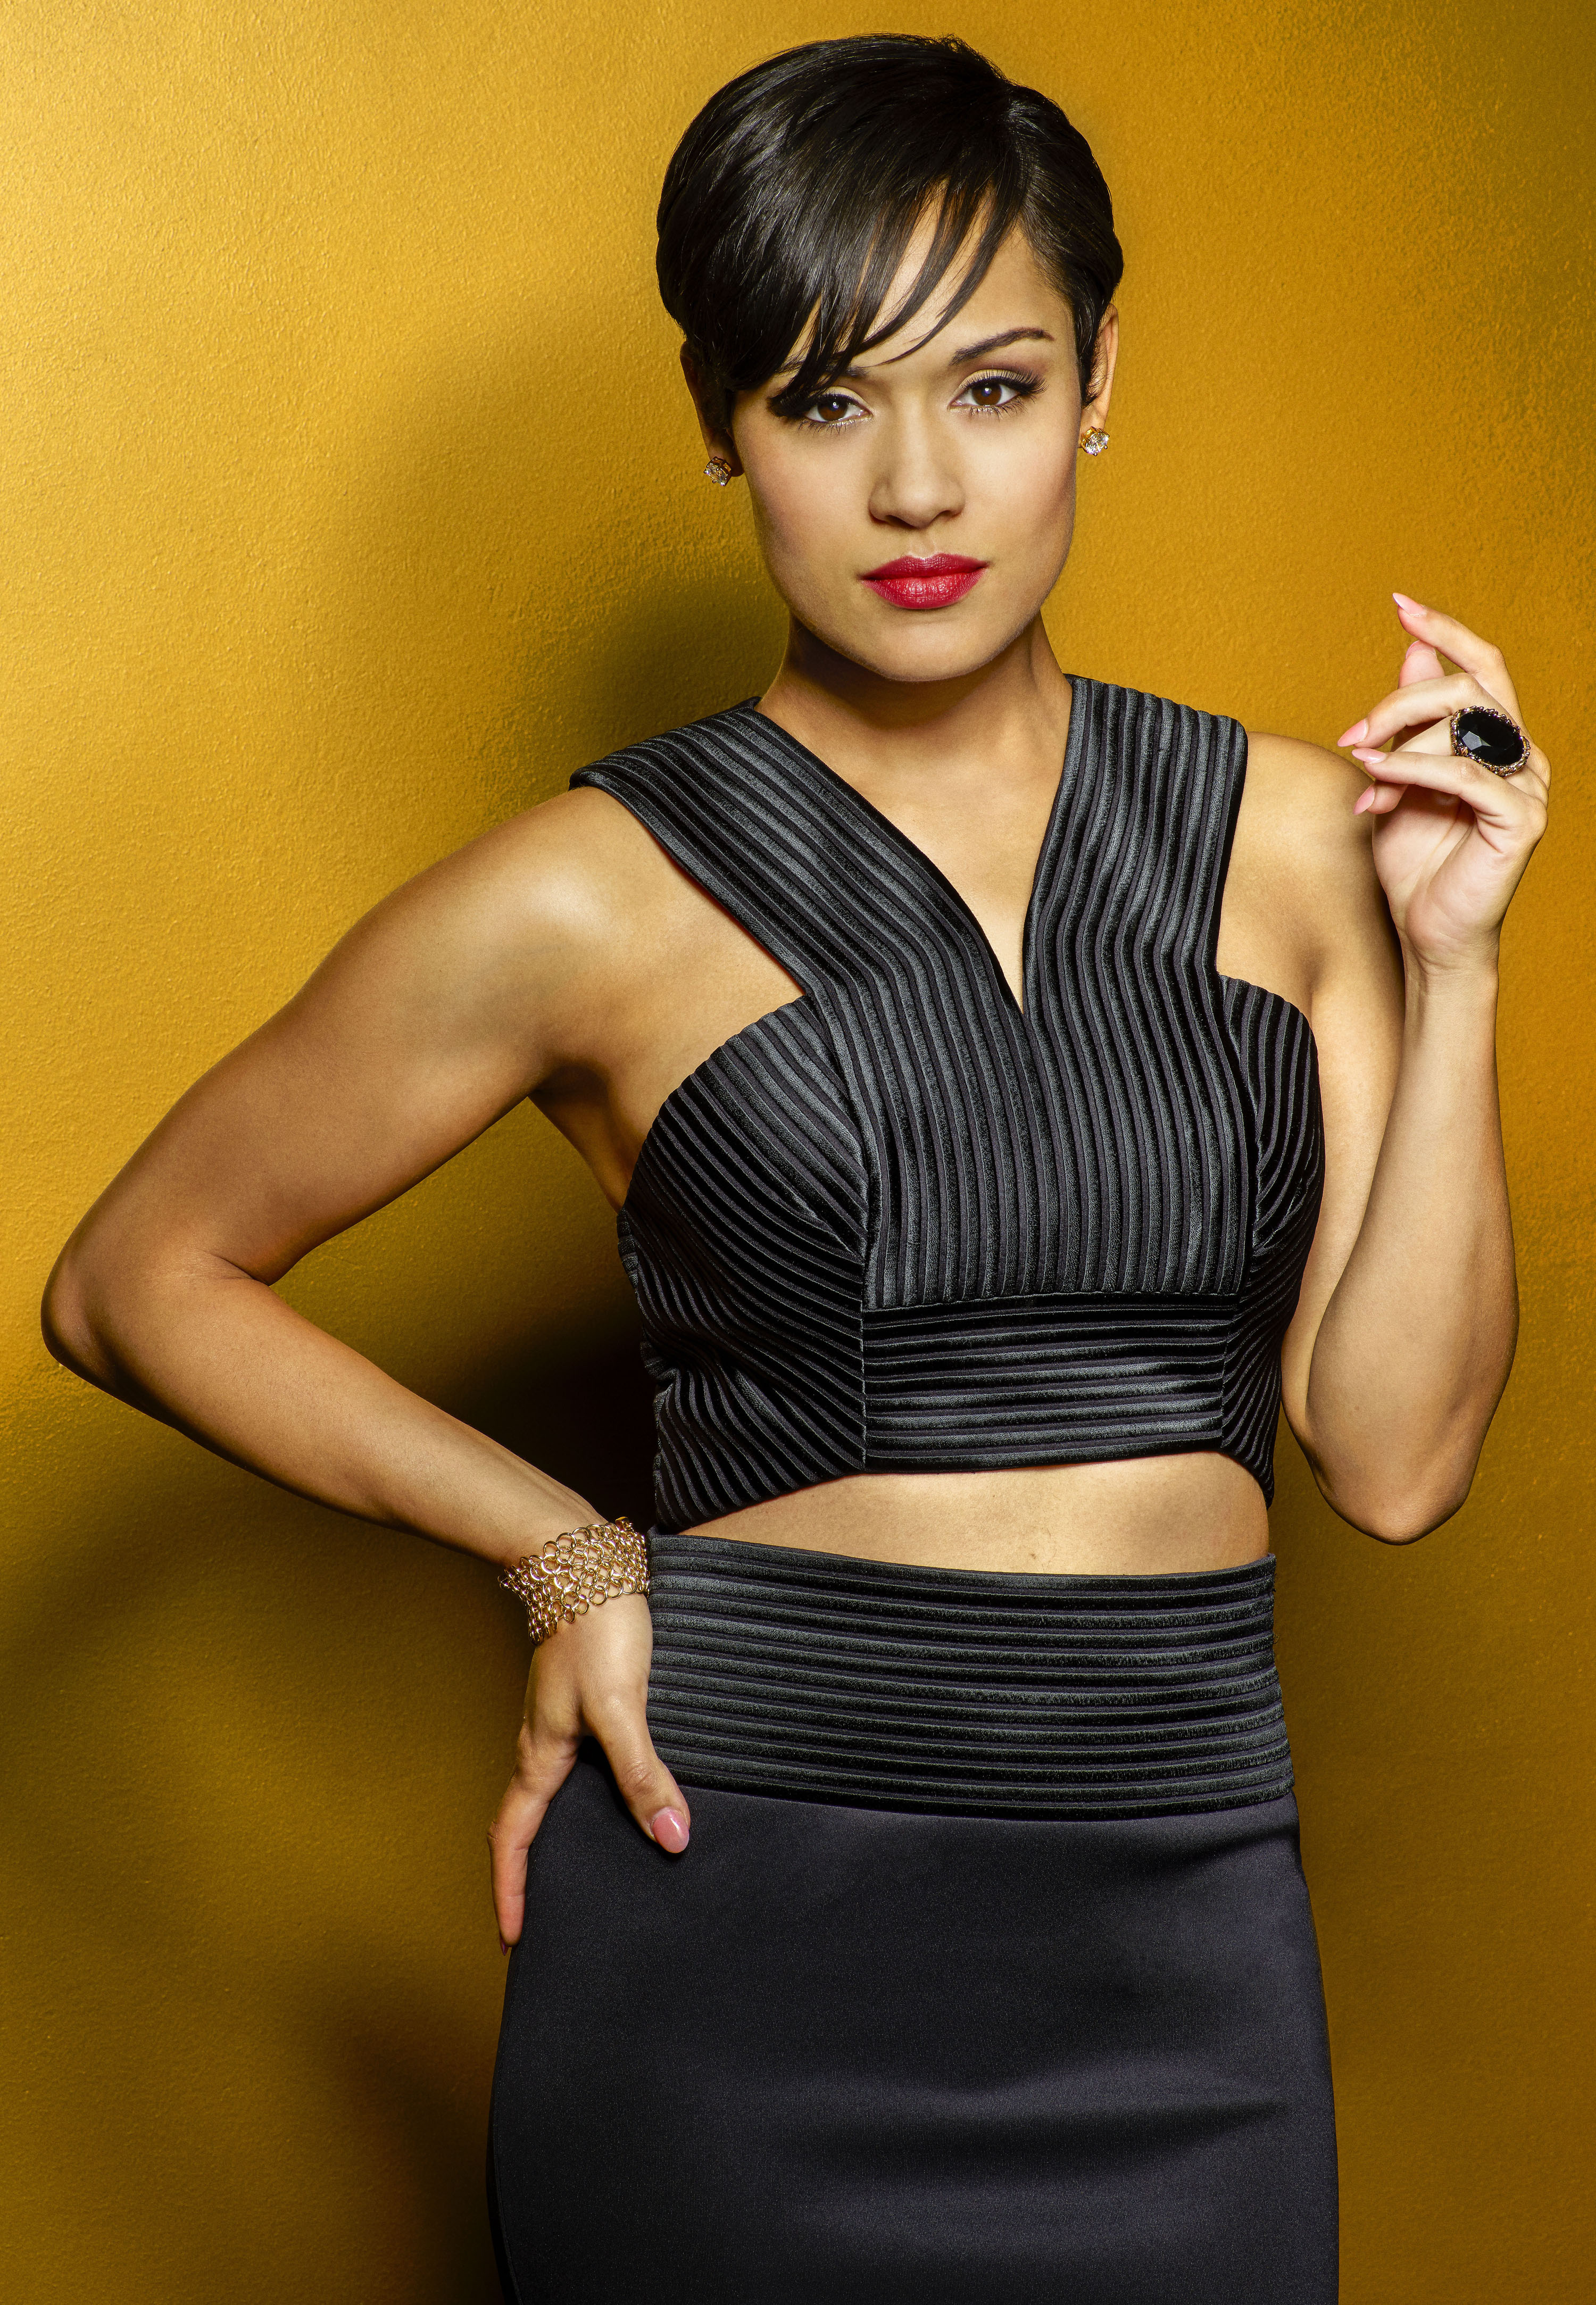 empire s grace gealey previews the first season my take on tv. Black Bedroom Furniture Sets. Home Design Ideas